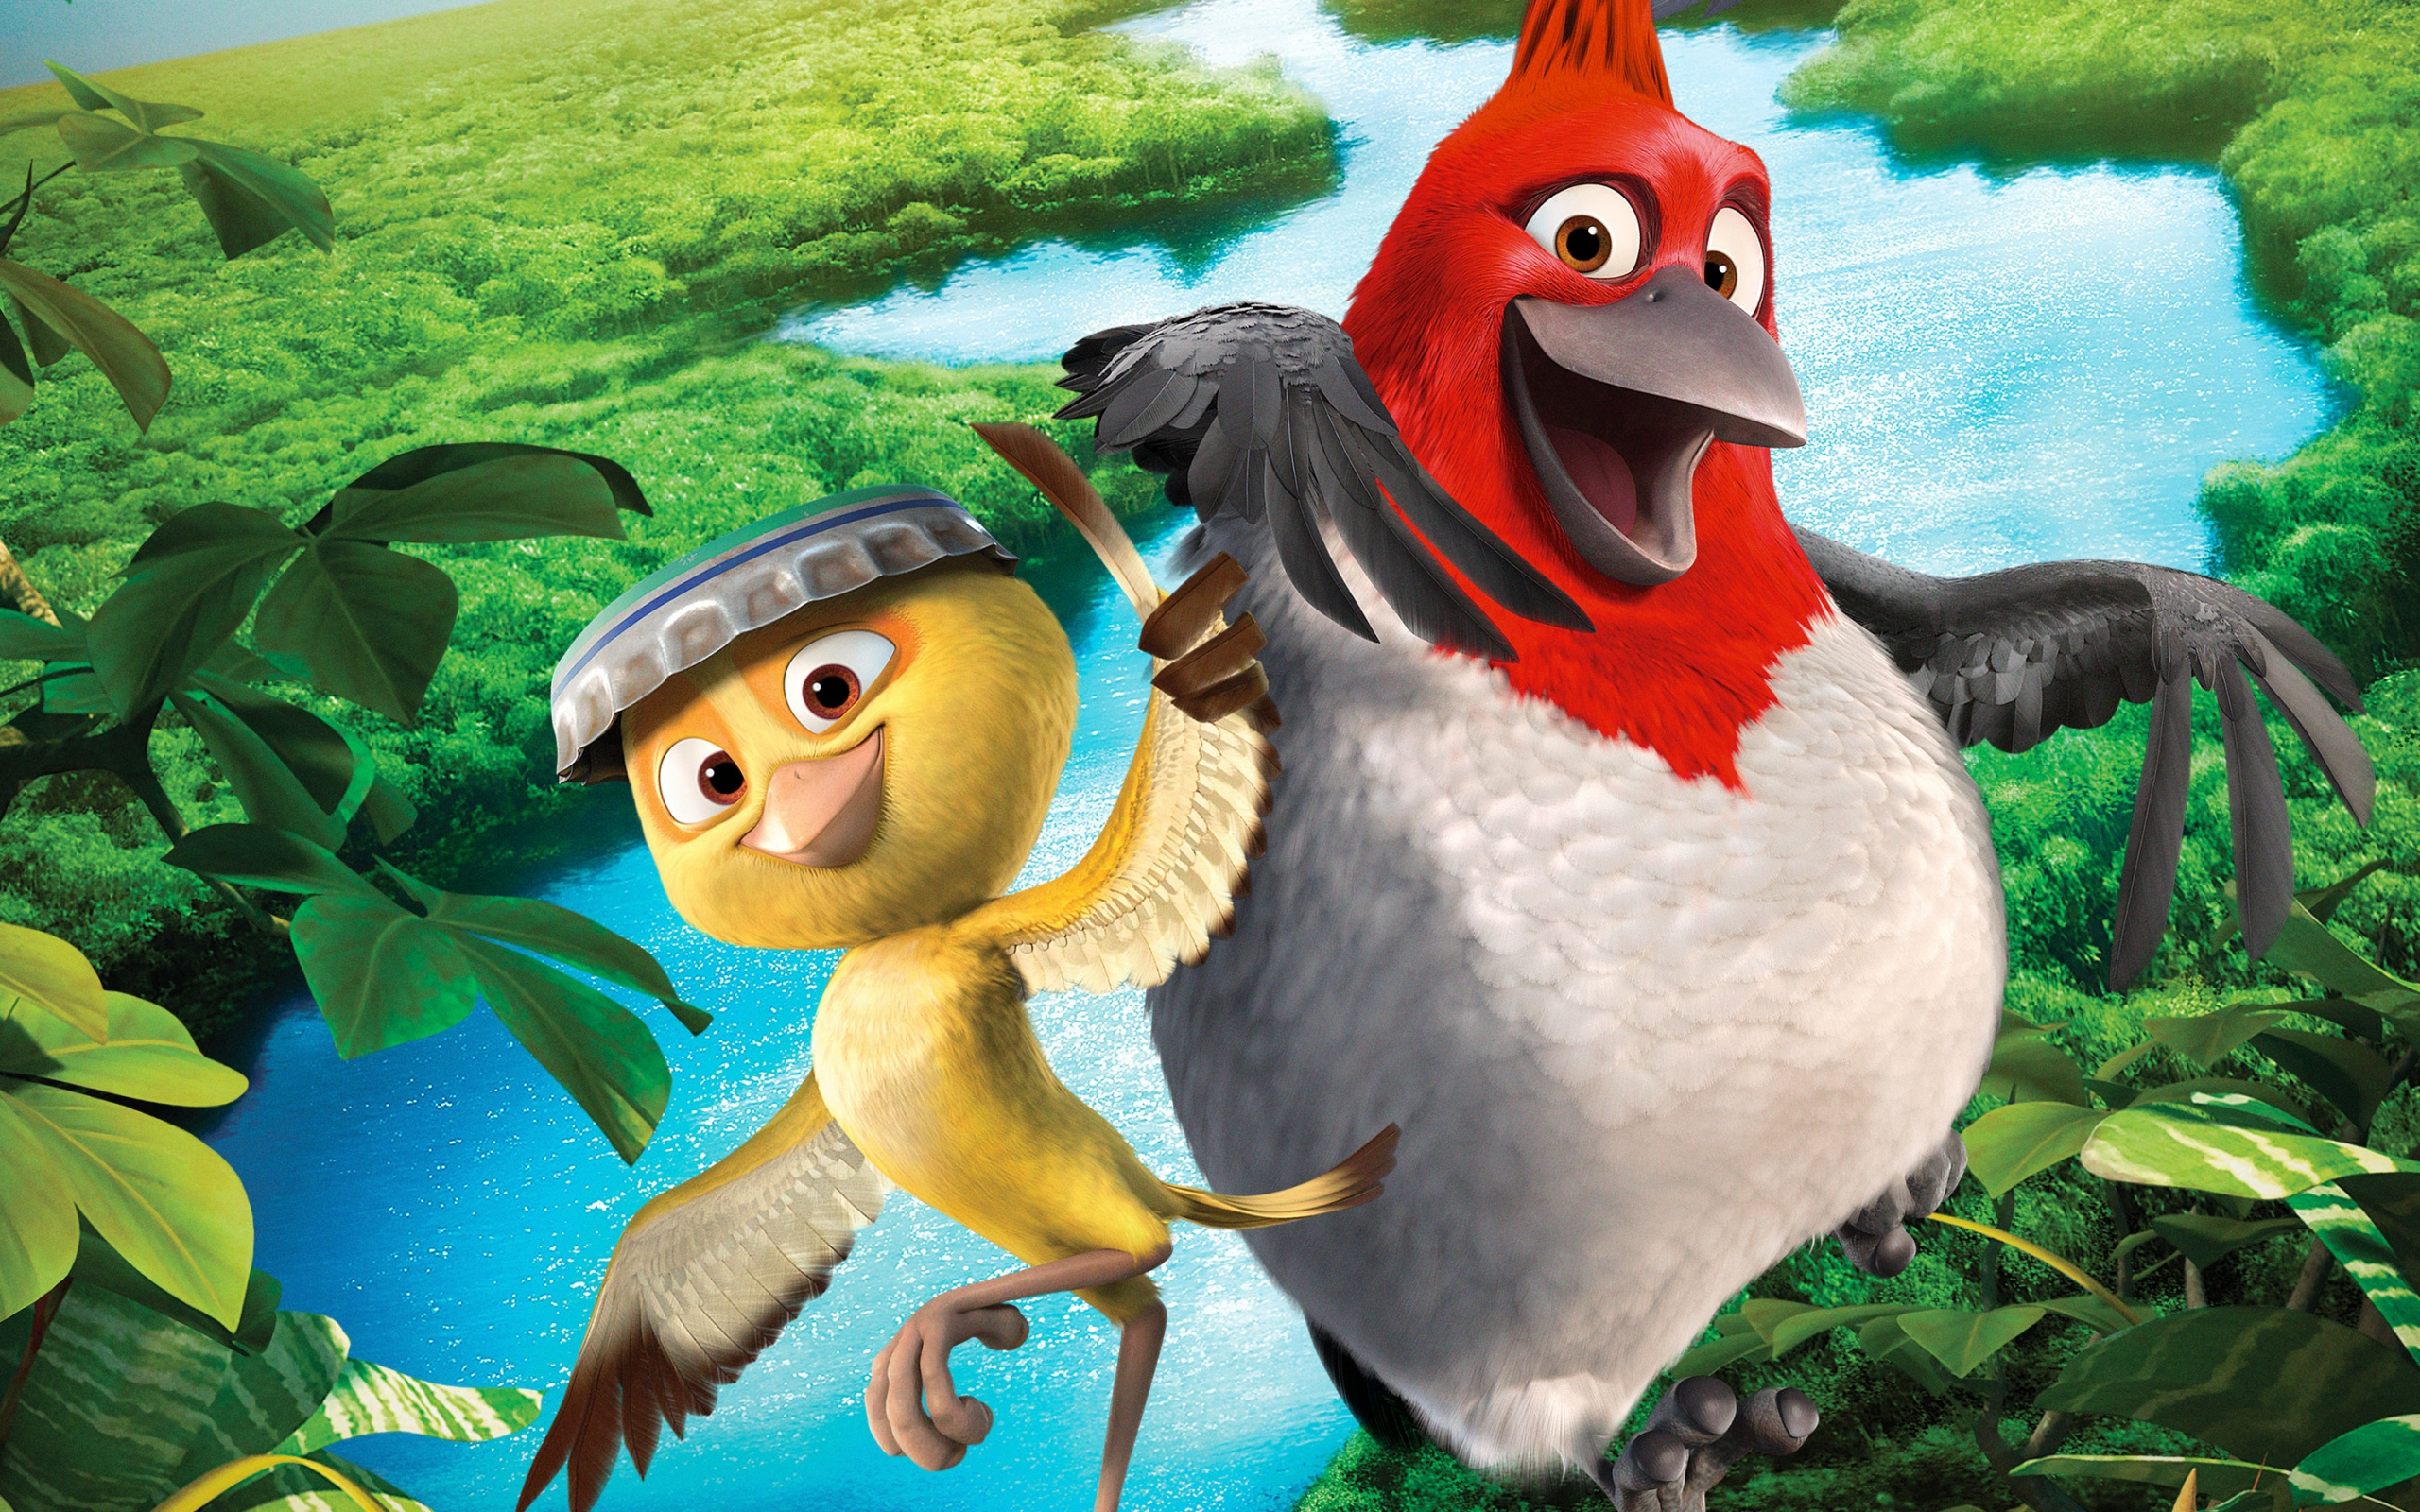 nico & pedro in rio 2 wallpapers in jpg format for free download